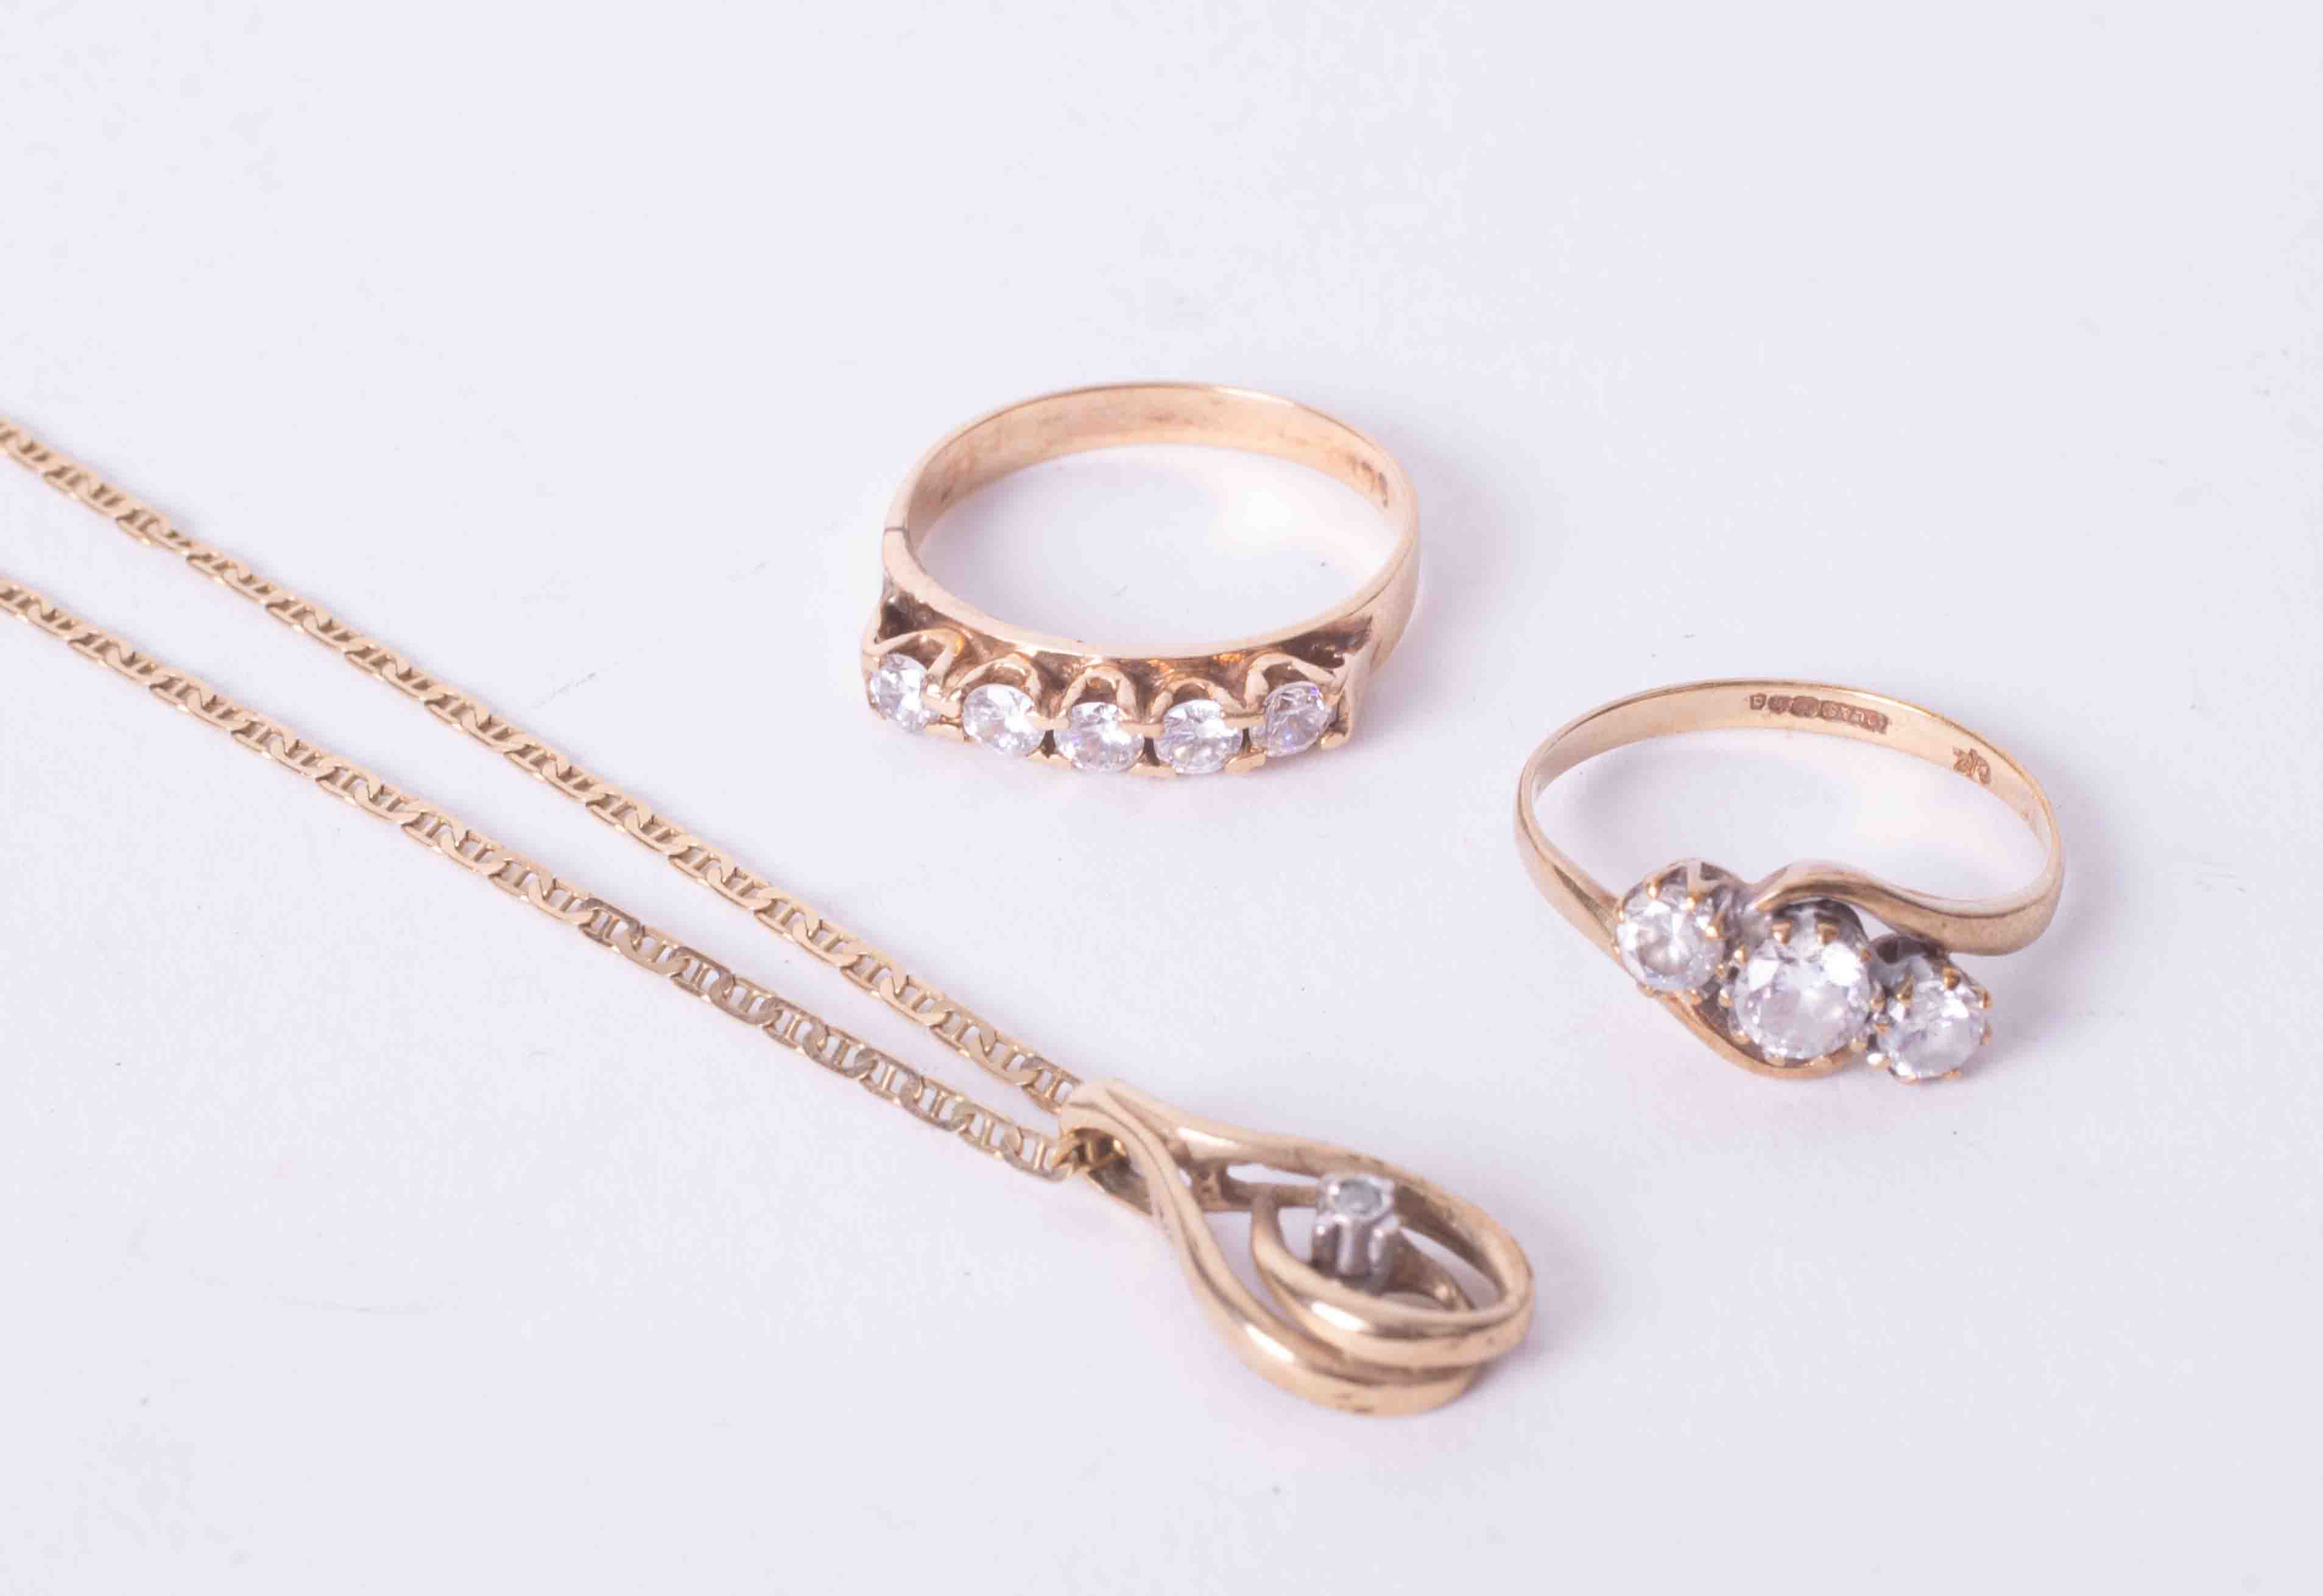 A mixed bag of two 9ct yellow gold rings set paste stones and a 9ct yellow gold chain with